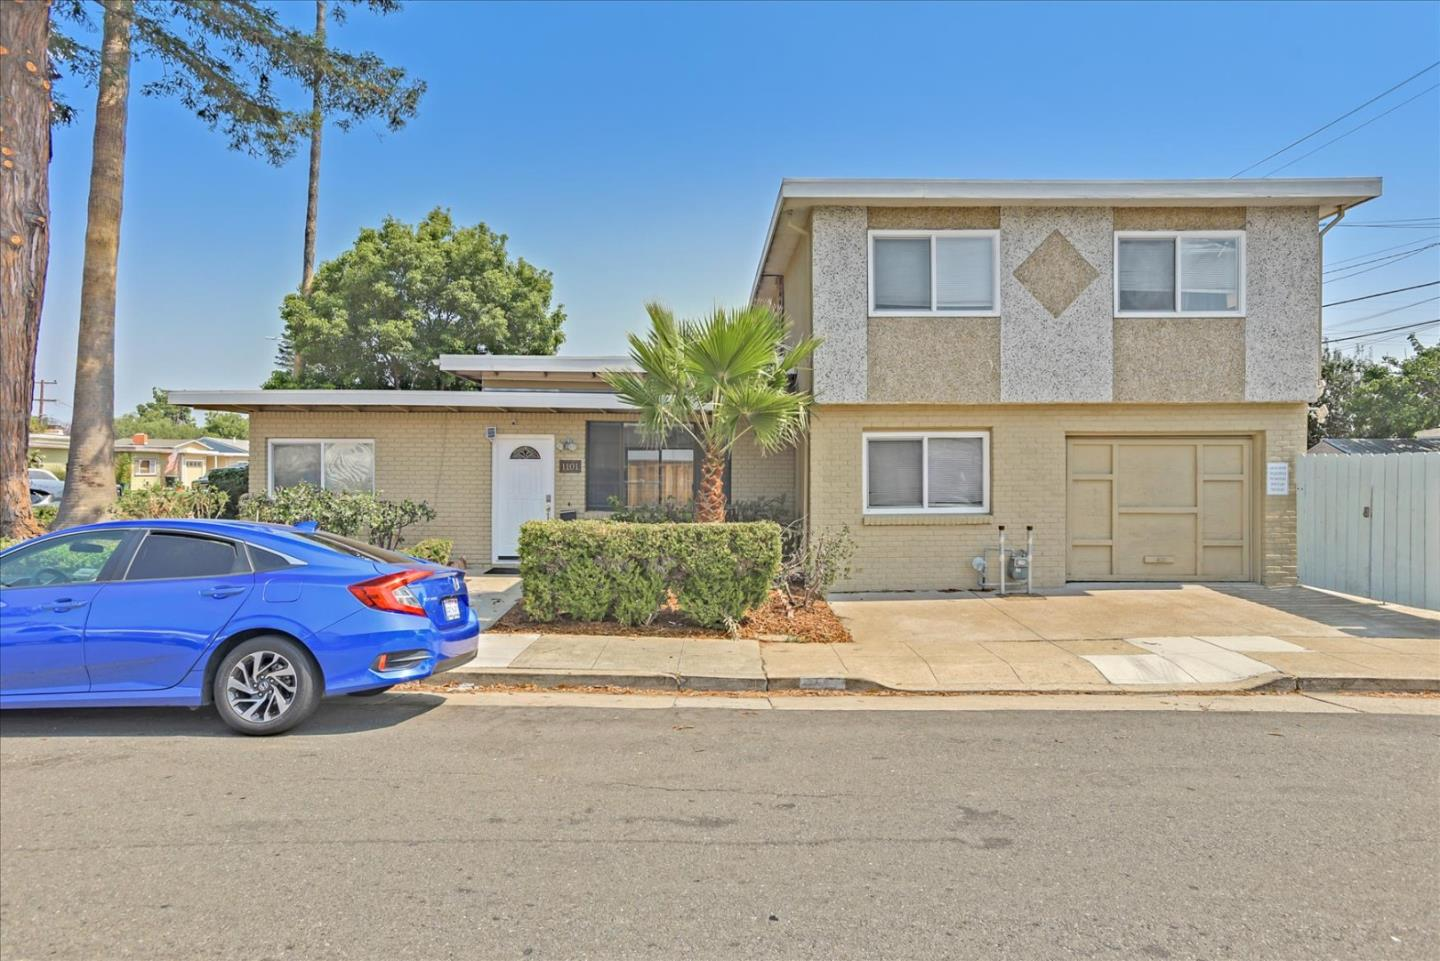 Detail Gallery Image 1 of 35 For 1101 Norton St, San Mateo,  CA 94401 - 7 Beds | 2 Baths